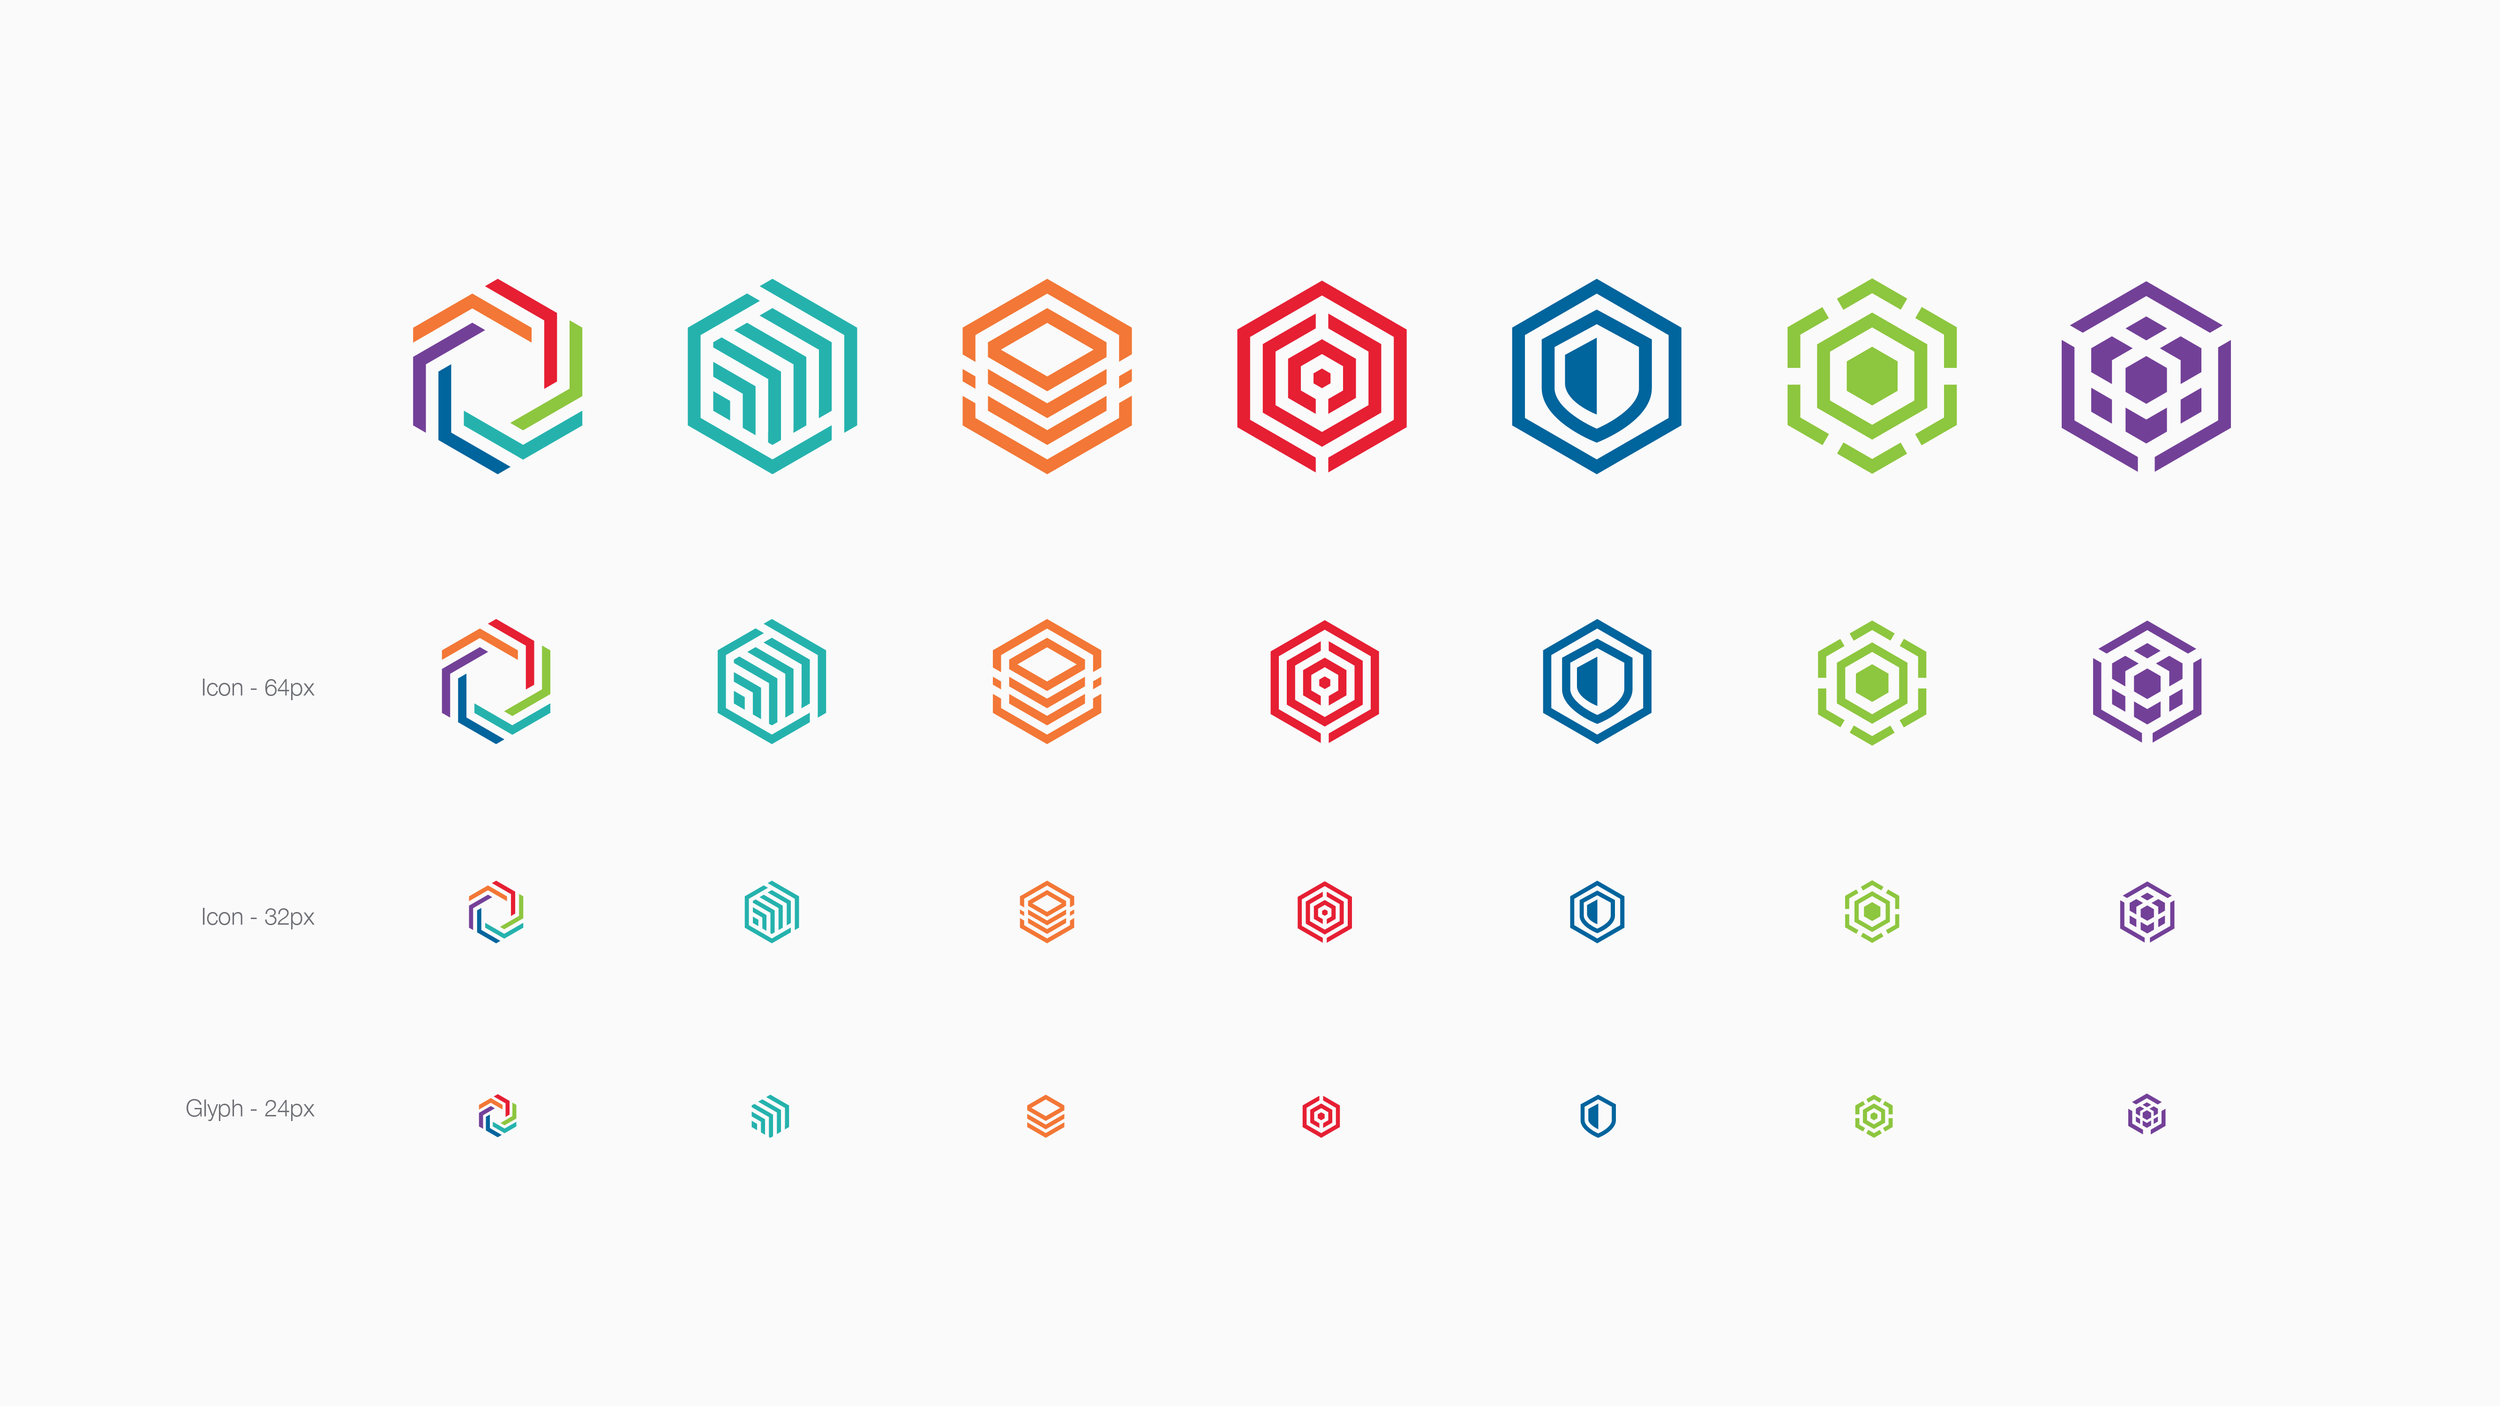 Final logos at different scales for responsive design